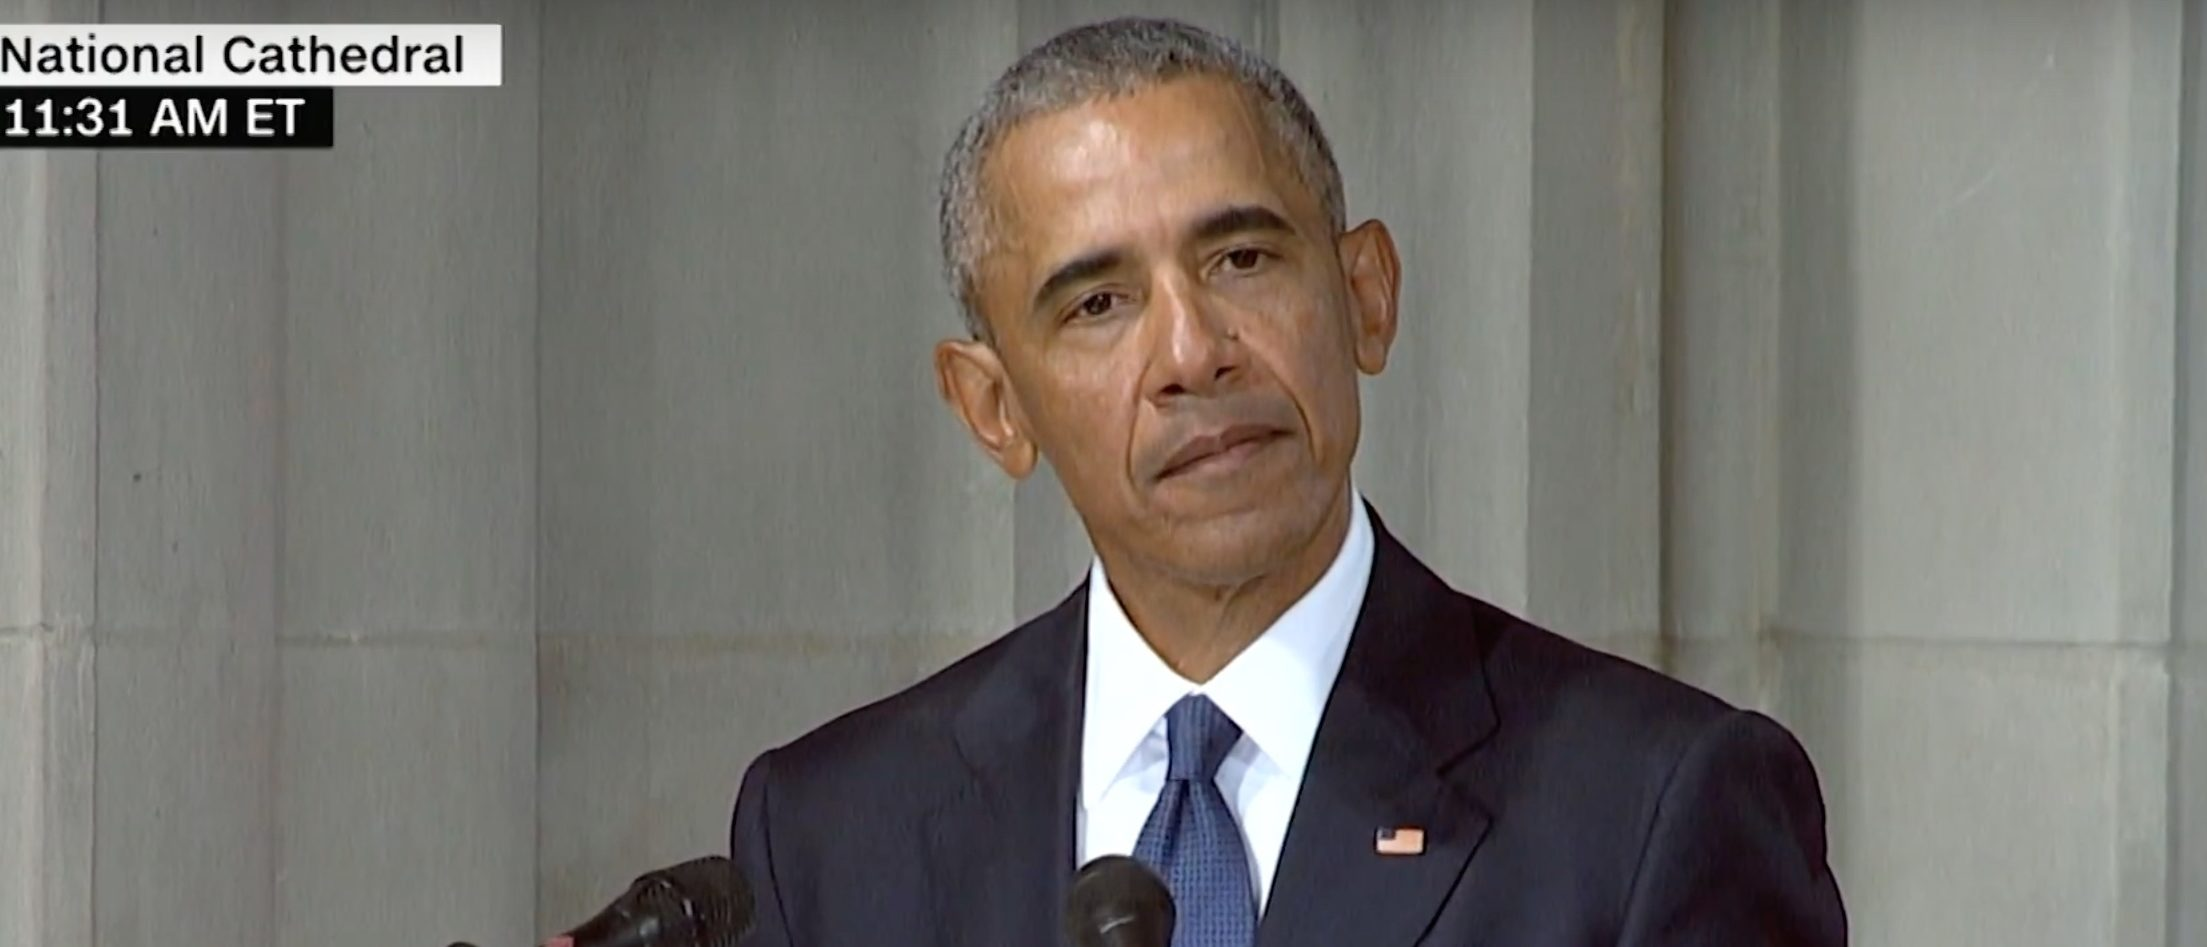 Obama delivers eulogy at service for Senator John McCain./Screenshot